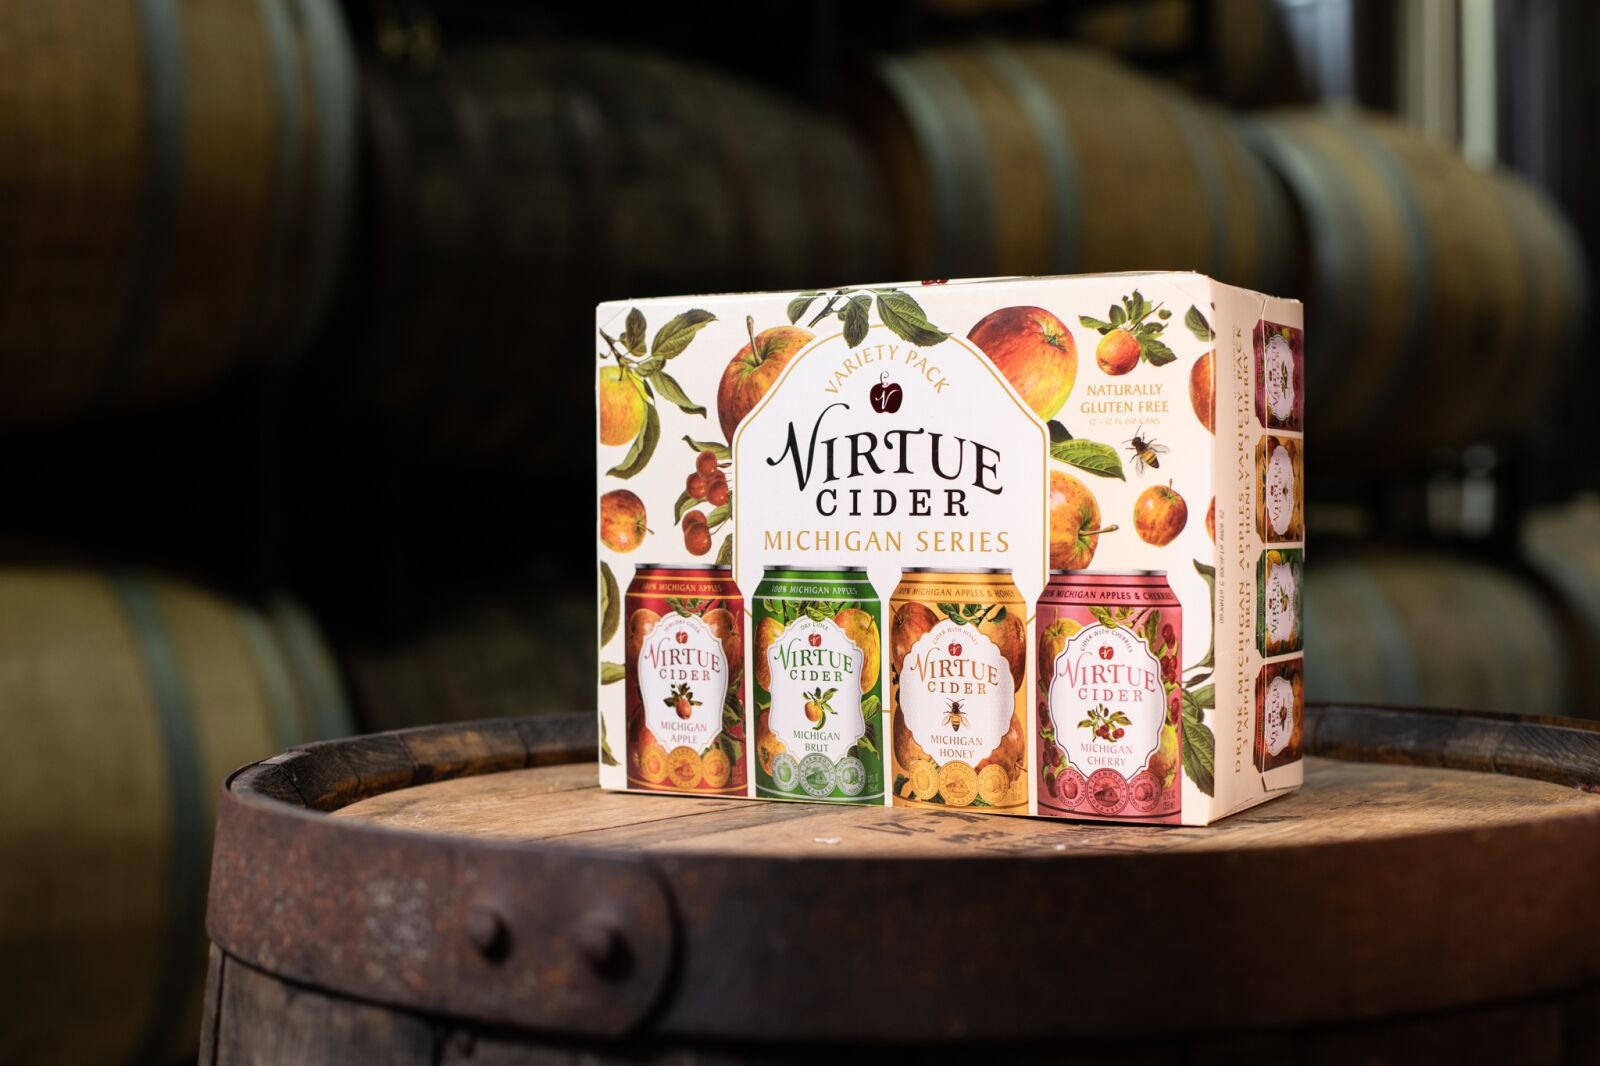 Virtue Cider offering the perfection collection of seasonal drinks